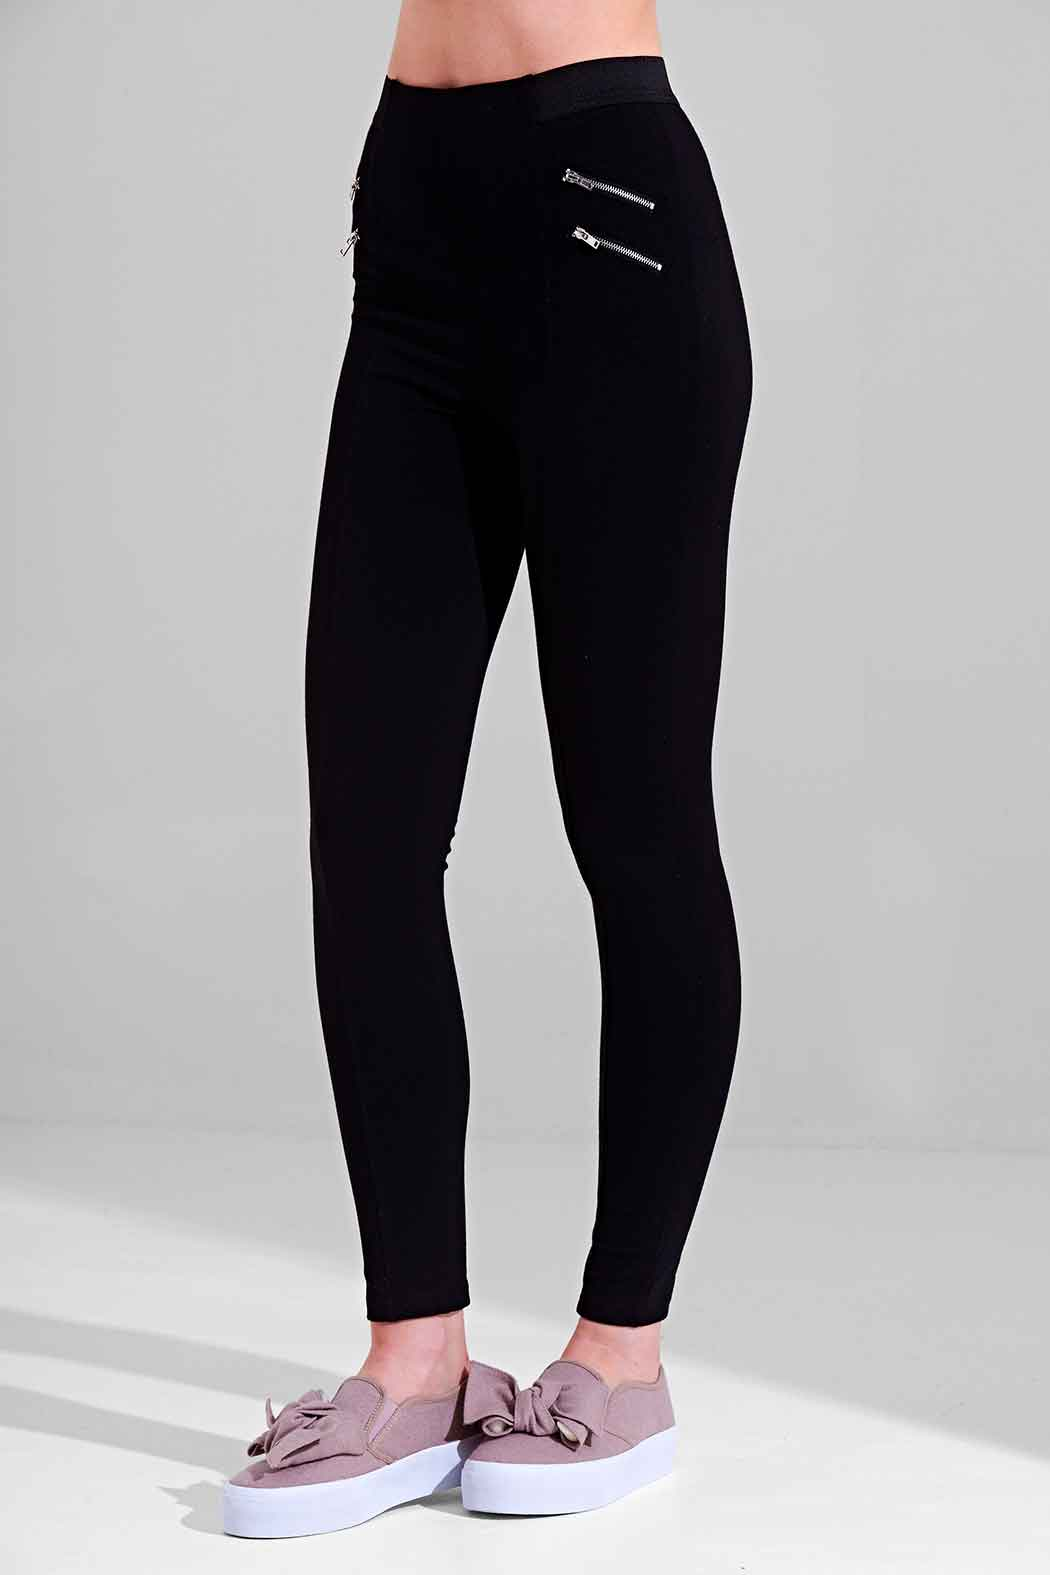 Athena Black Zipped Legging